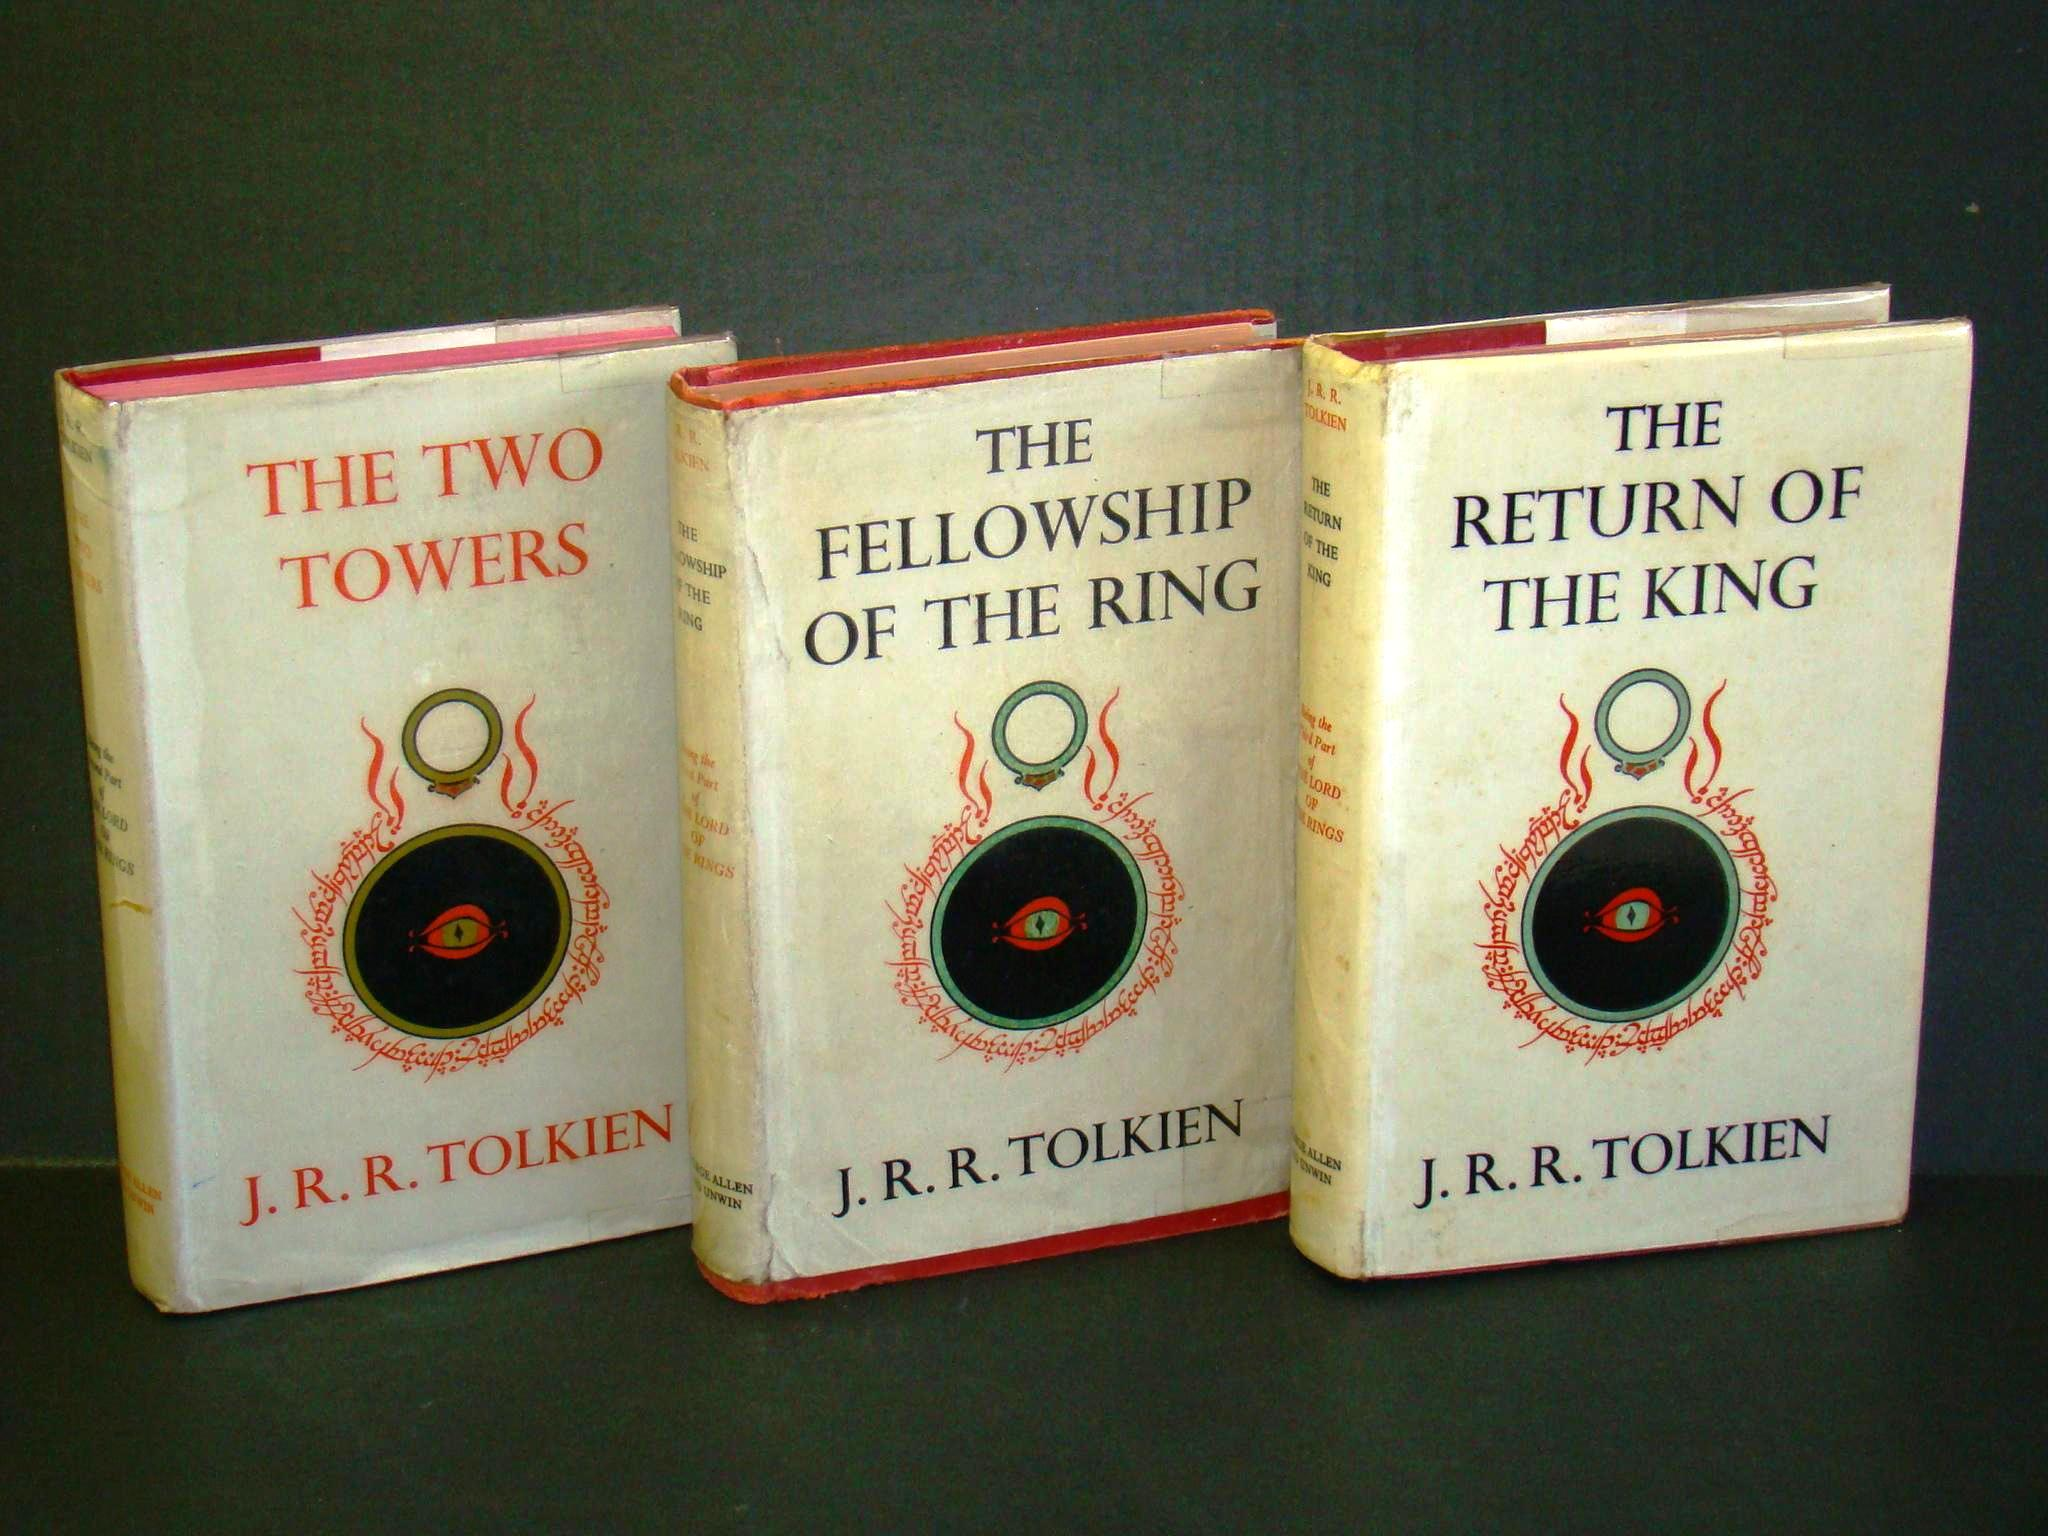 an analysis of the fellowship of the ring lord of the rings part i book ii a novel by jrr tolkien The second book in jrr tolkien's lord of the rings the first part of the lord of the rings of the lord of the rings: the fellowship of the ring.